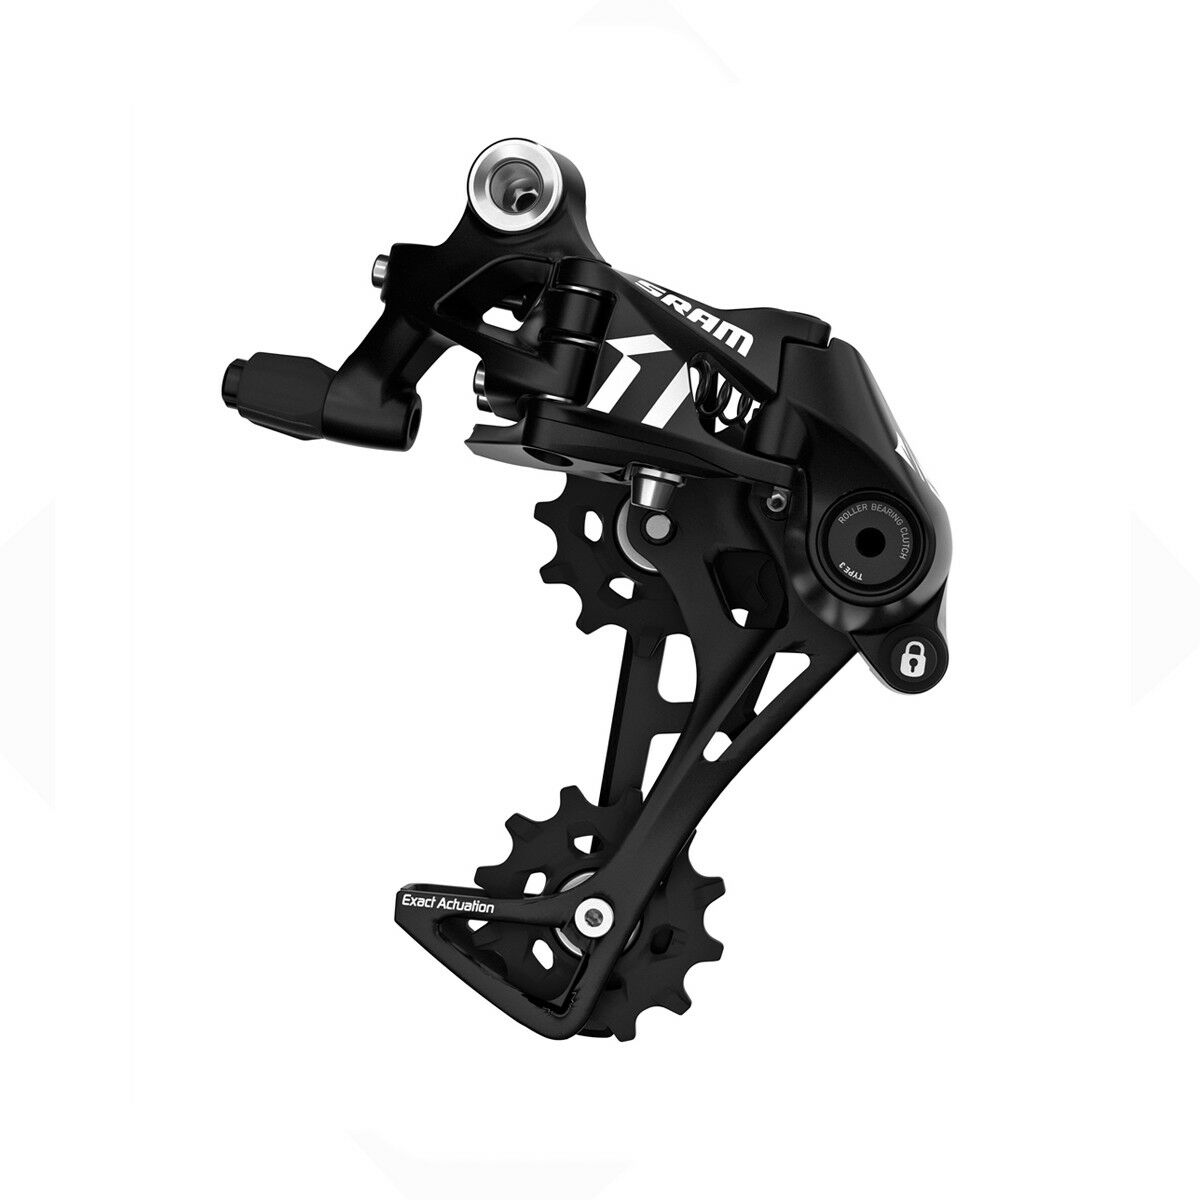 SRAM Apex 1 rear derailleur Black Long Cage 11 11 11 Speed 31f709